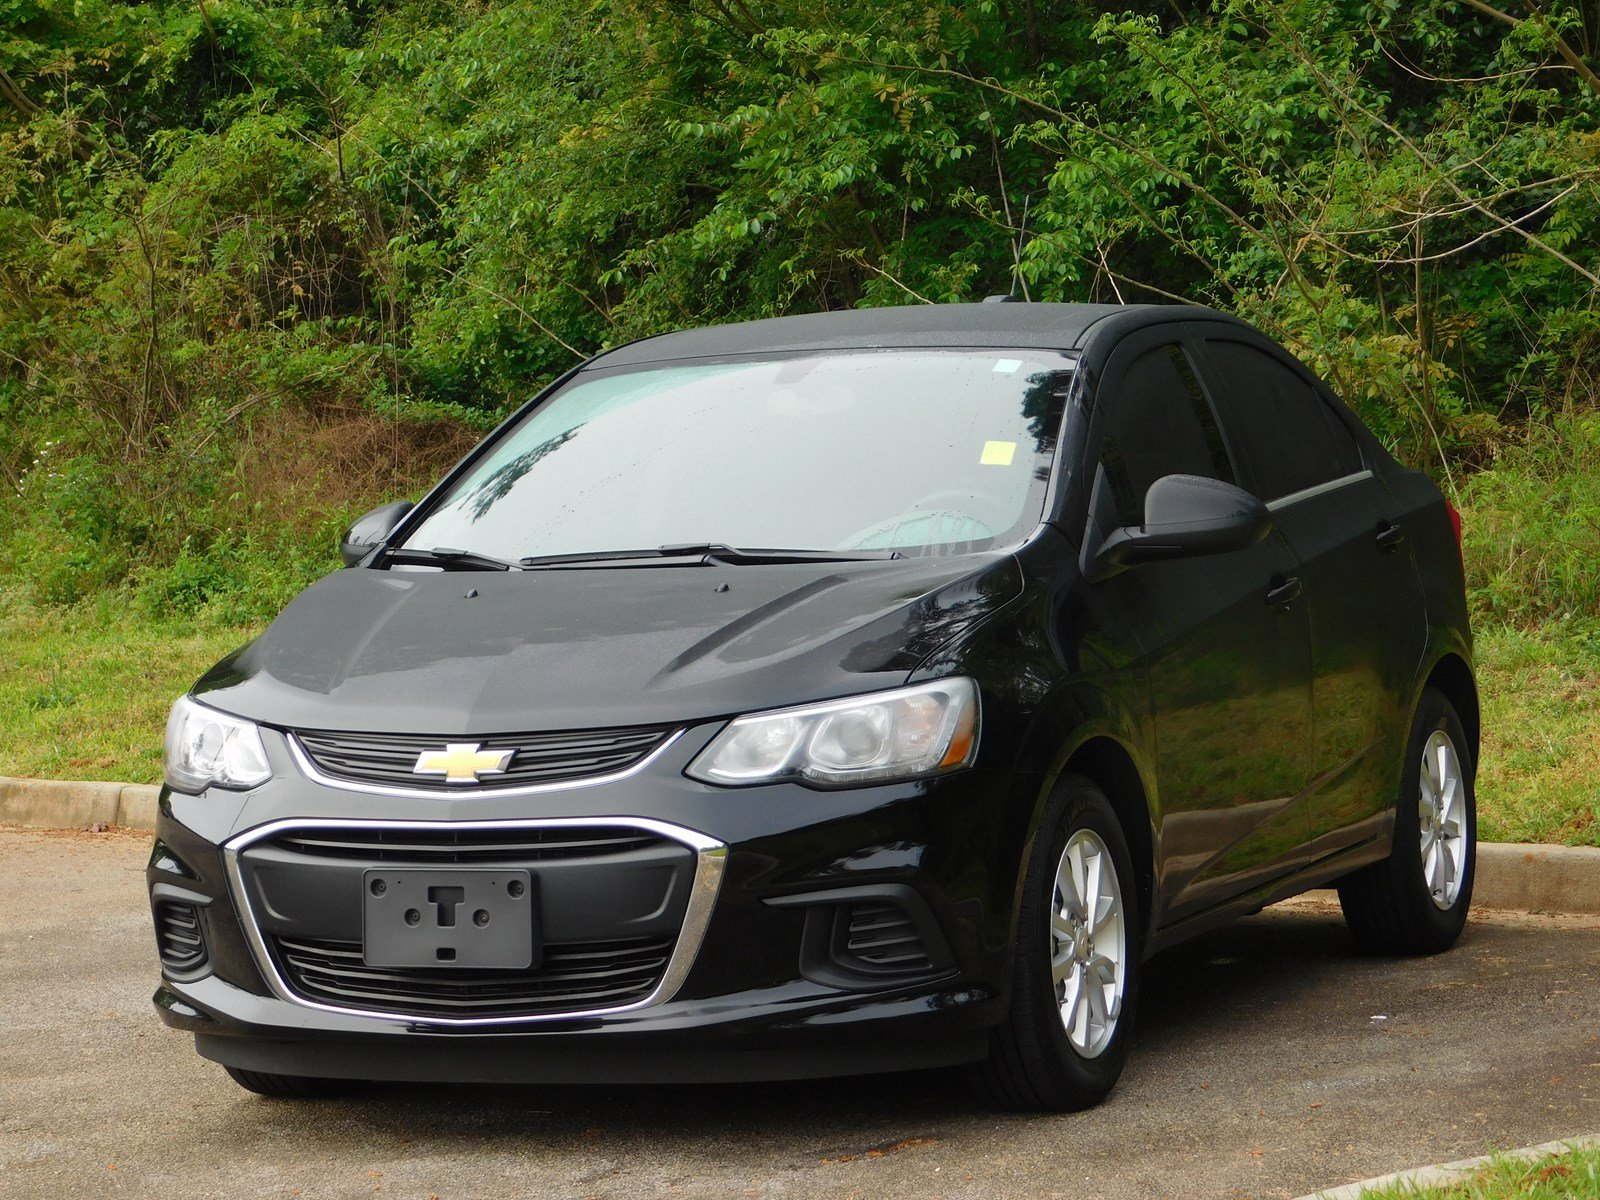 $600 Cars for Sale Near Me Luxury Cars for Sale In Macon Ga Autotrader